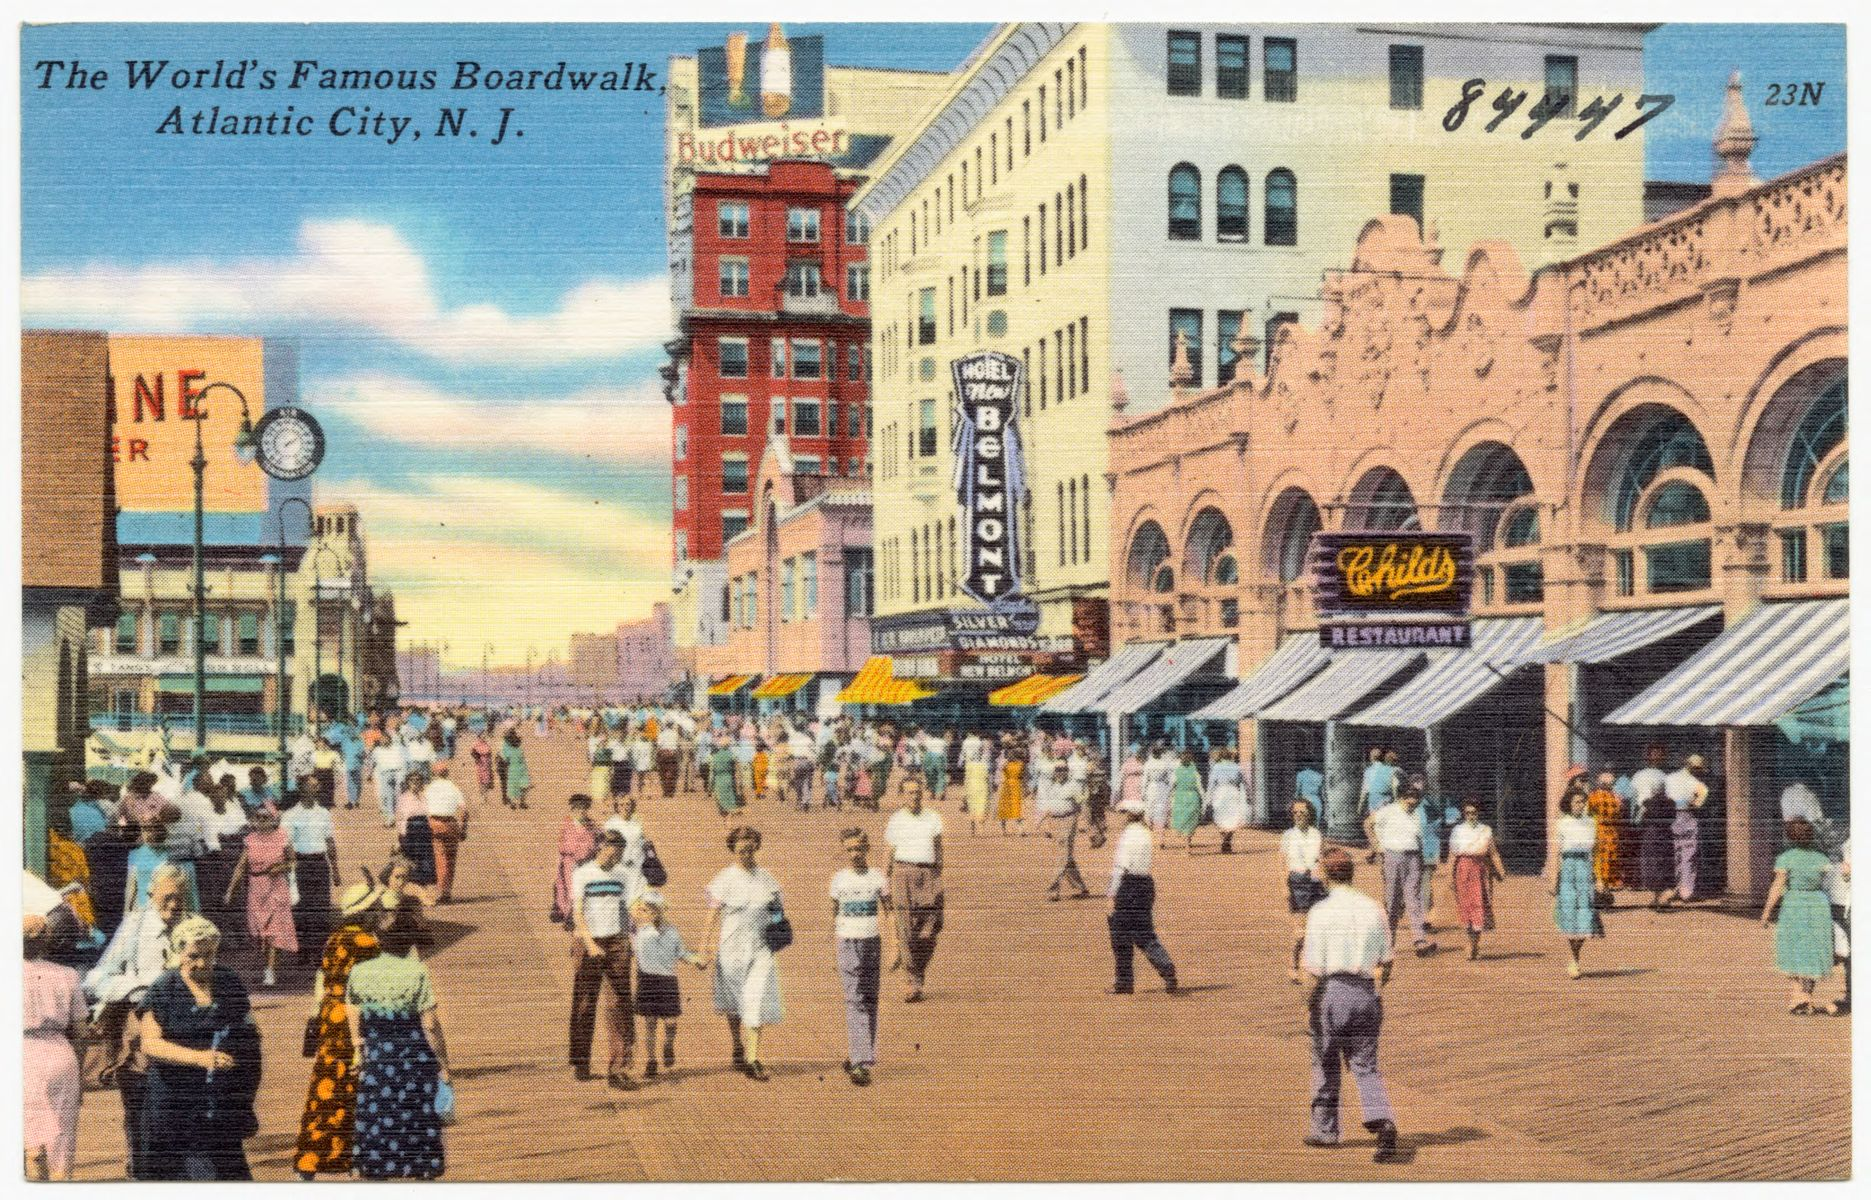 """A colorful painted postcard shows a beachside boardwalk with white families walking along it, and signs point out a movie theater, stores, and a beer advertisement. """"The World's Famous Boardwalk, Atlantic City, N.J."""" (1930) Boston Public Library, Digital Commonwealth."""